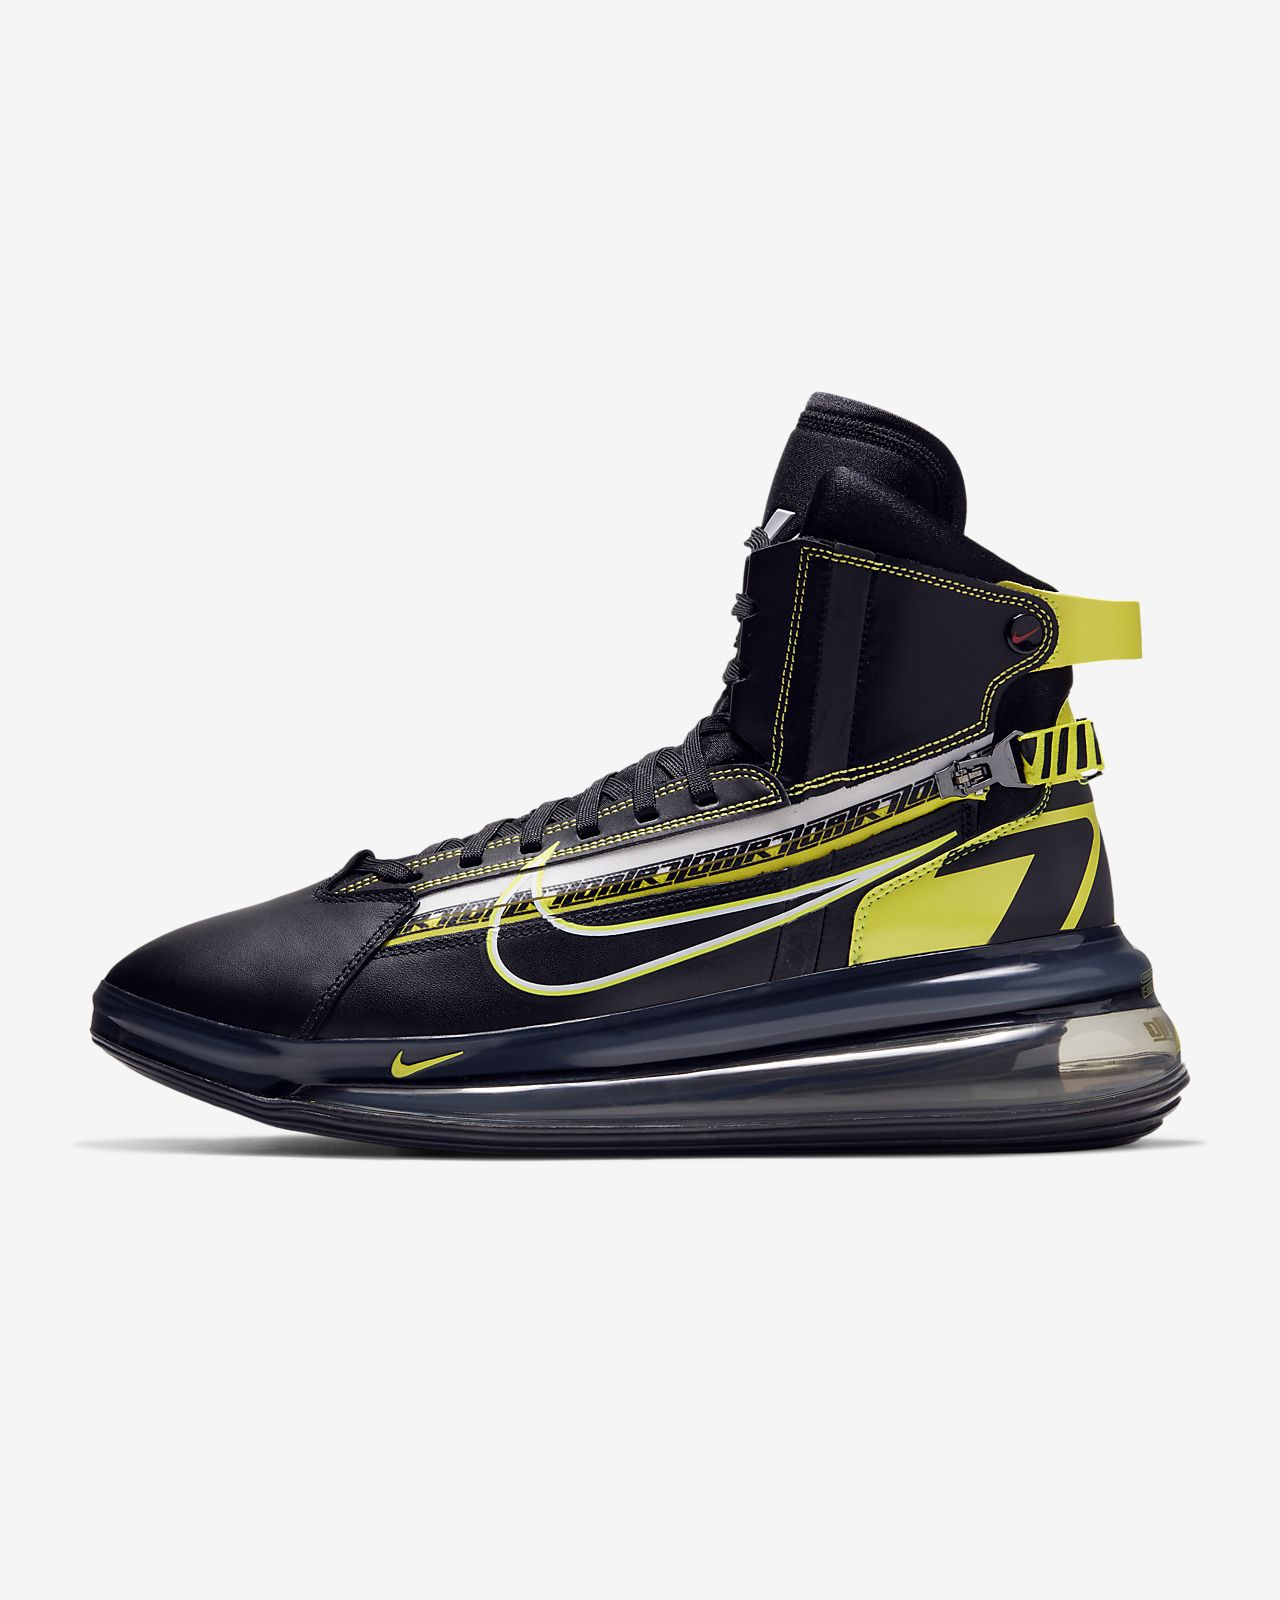 Nike Air Max 720 SATRN QS Men's Shoe